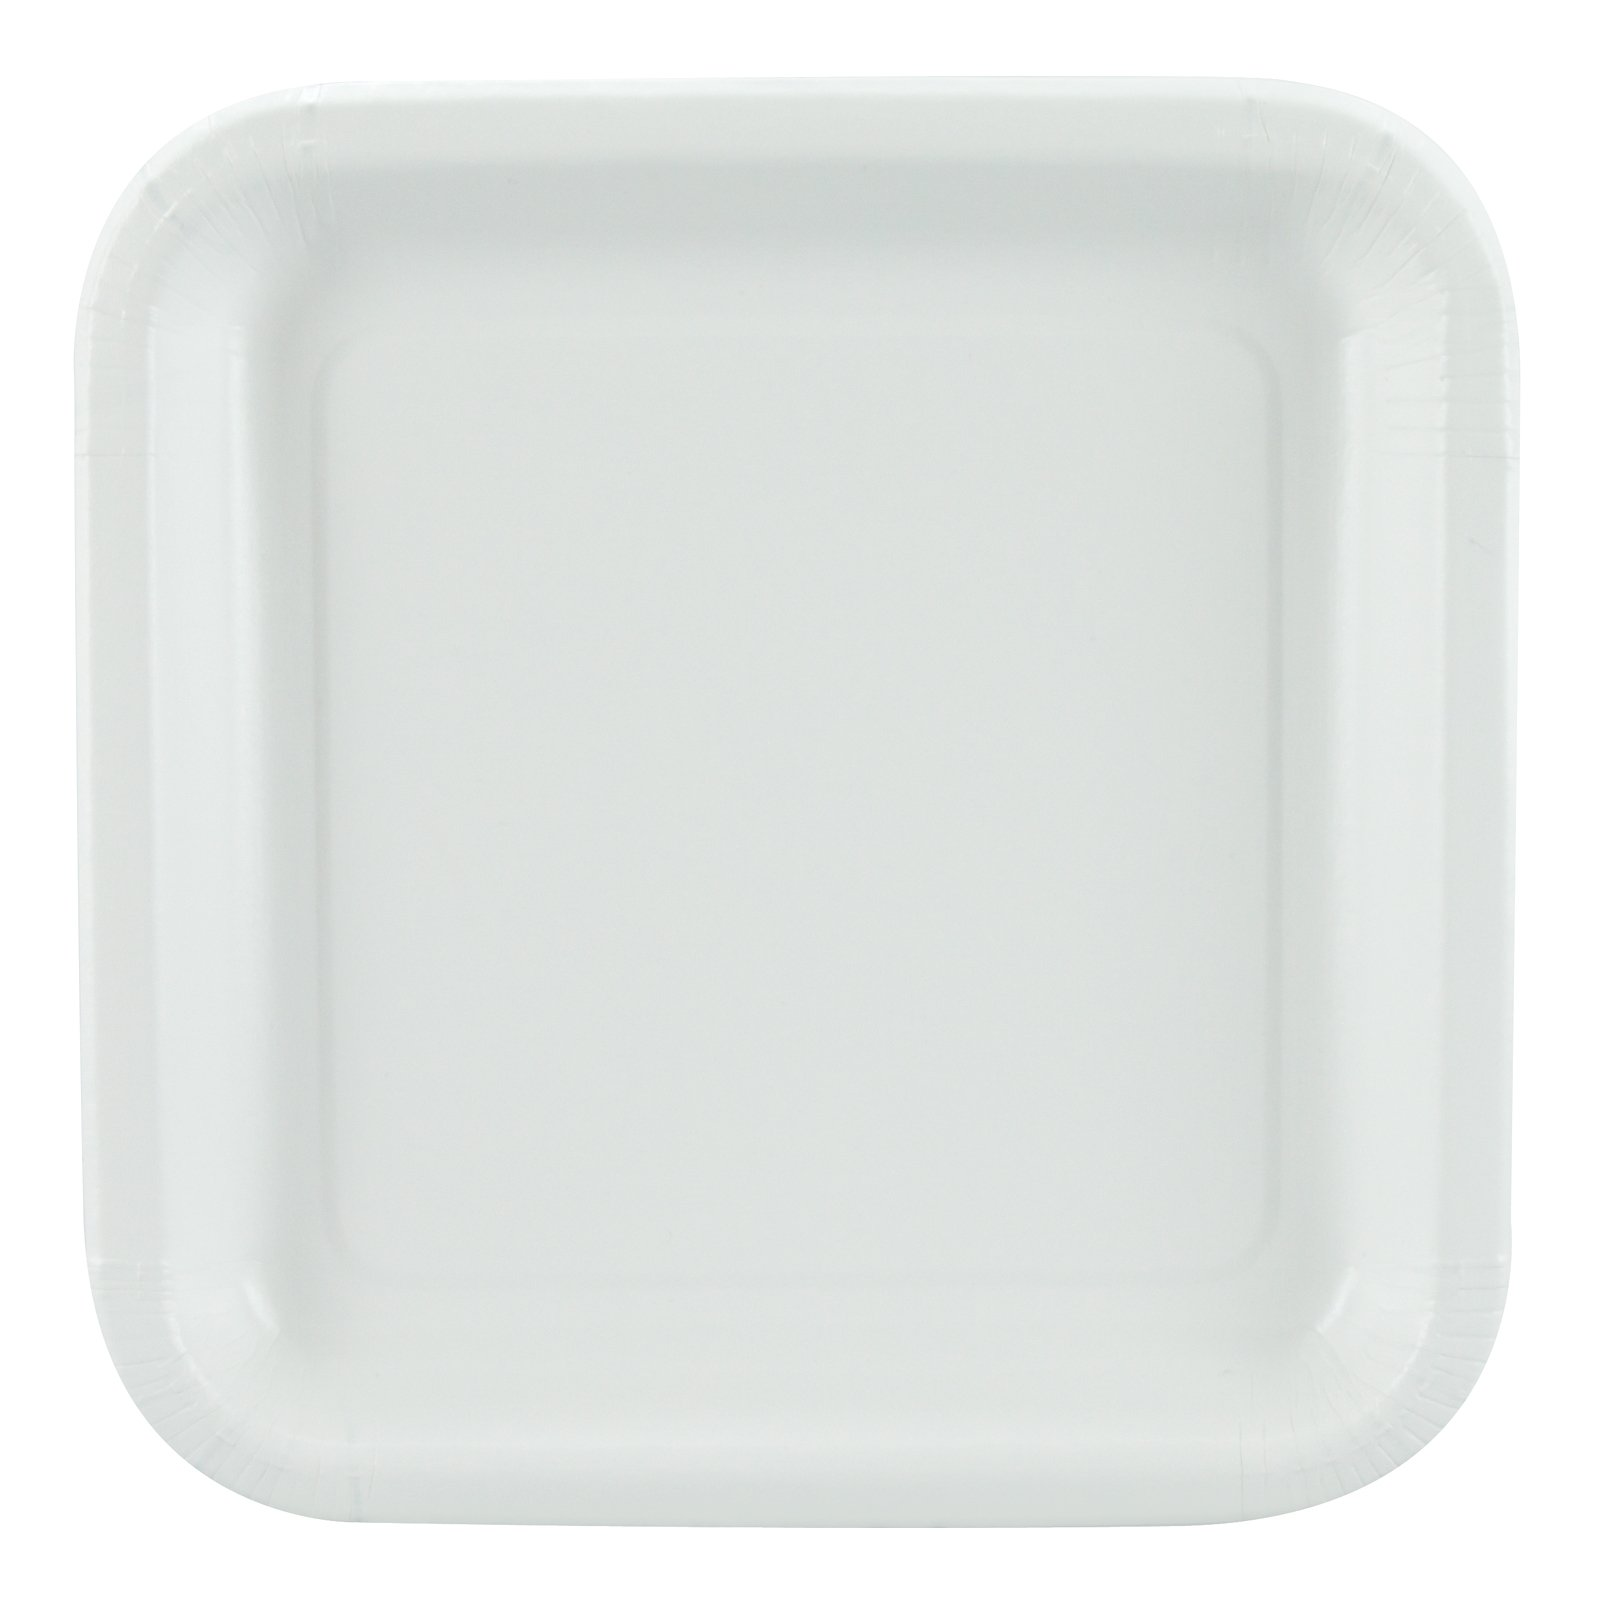 White Square Dessert Plates (12 count)